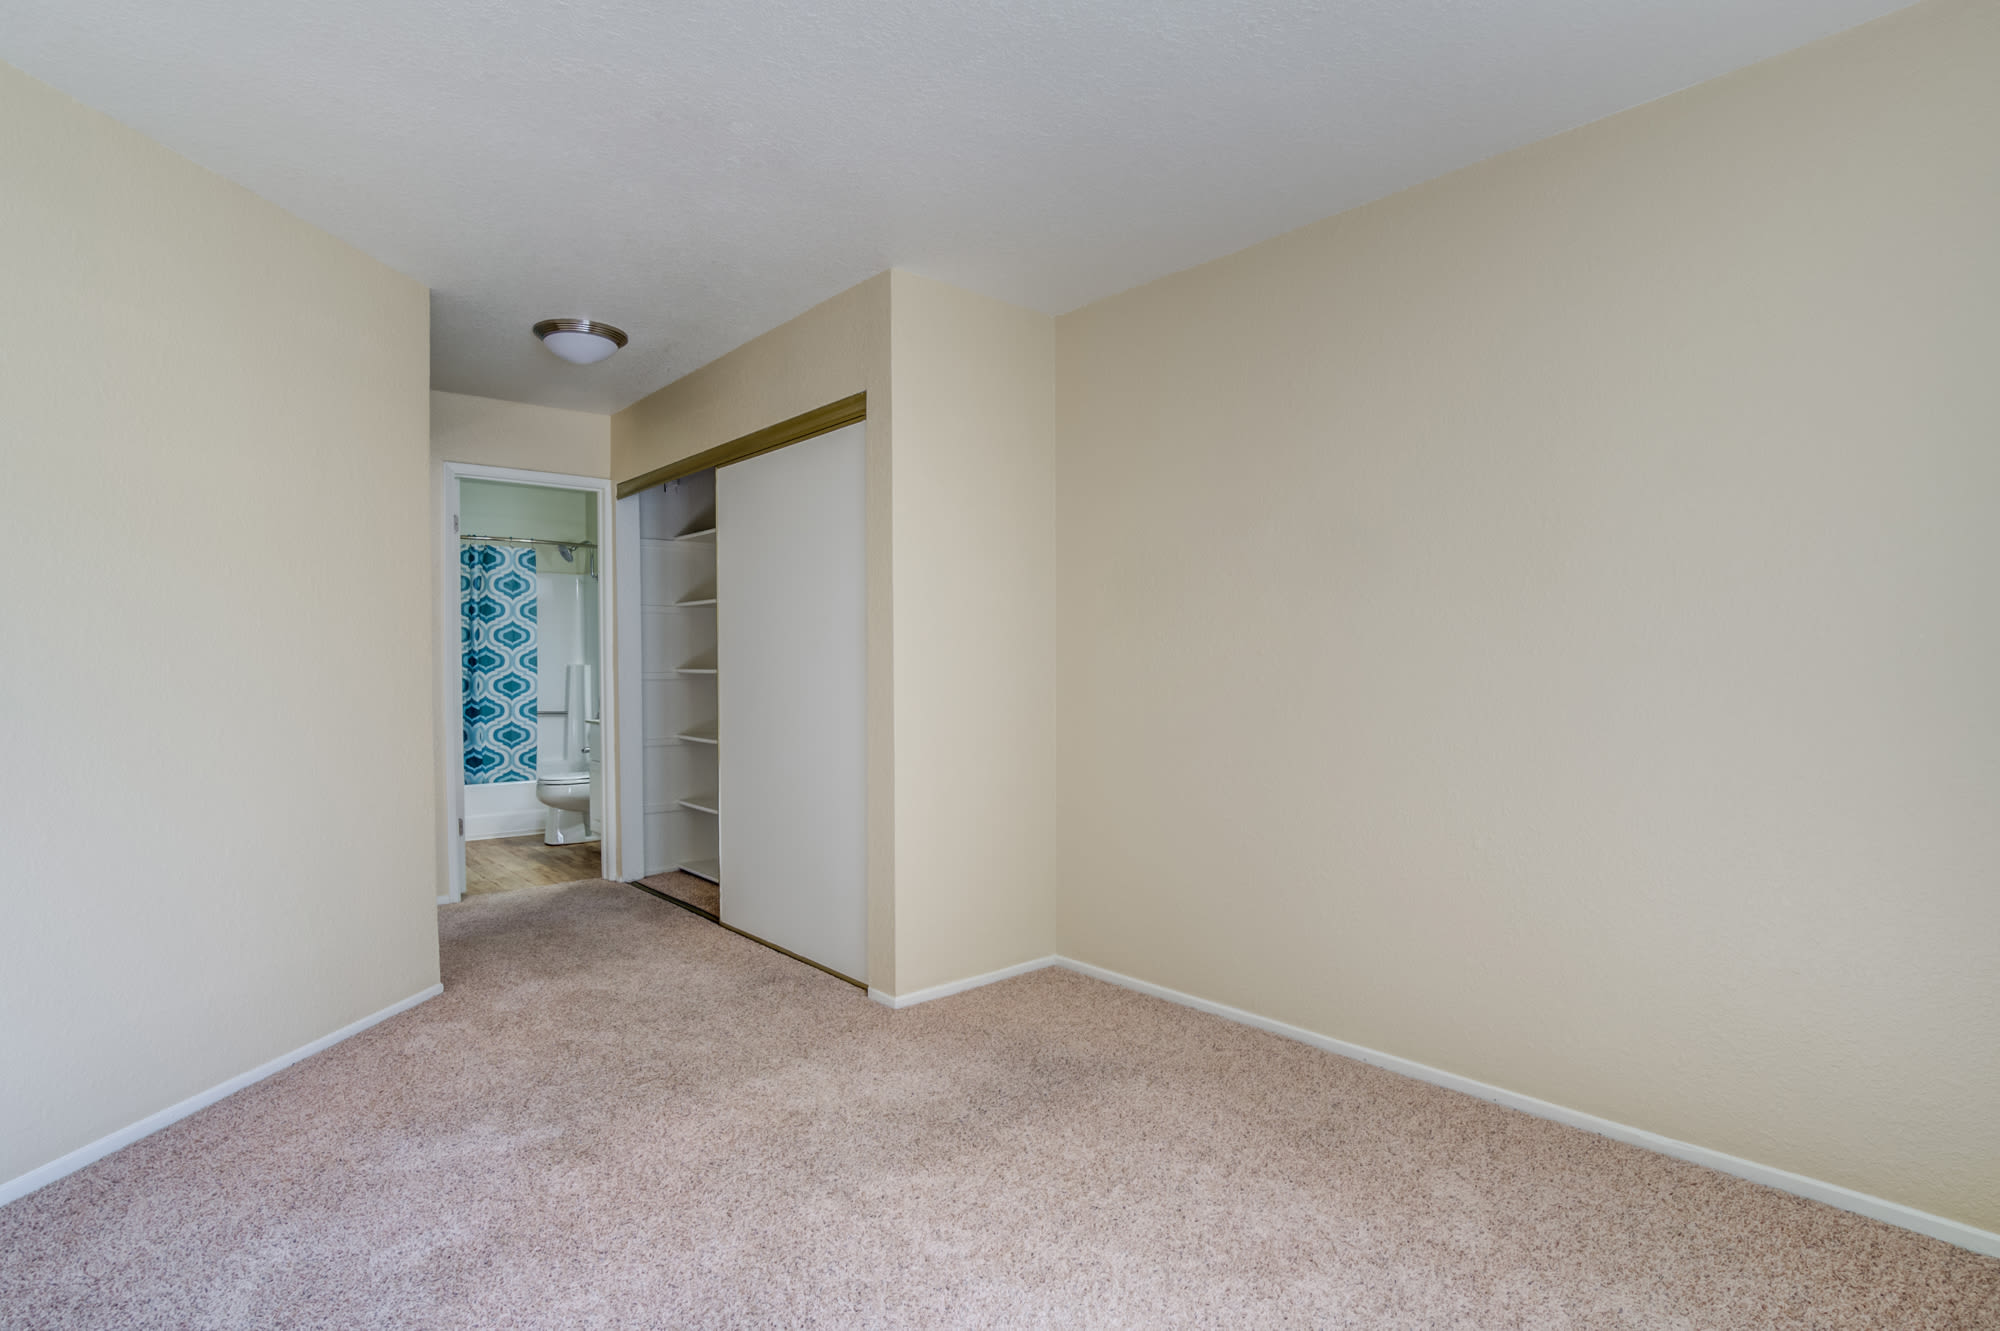 Empty Bedroom at Sommerset Apartments in Vacaville, CA